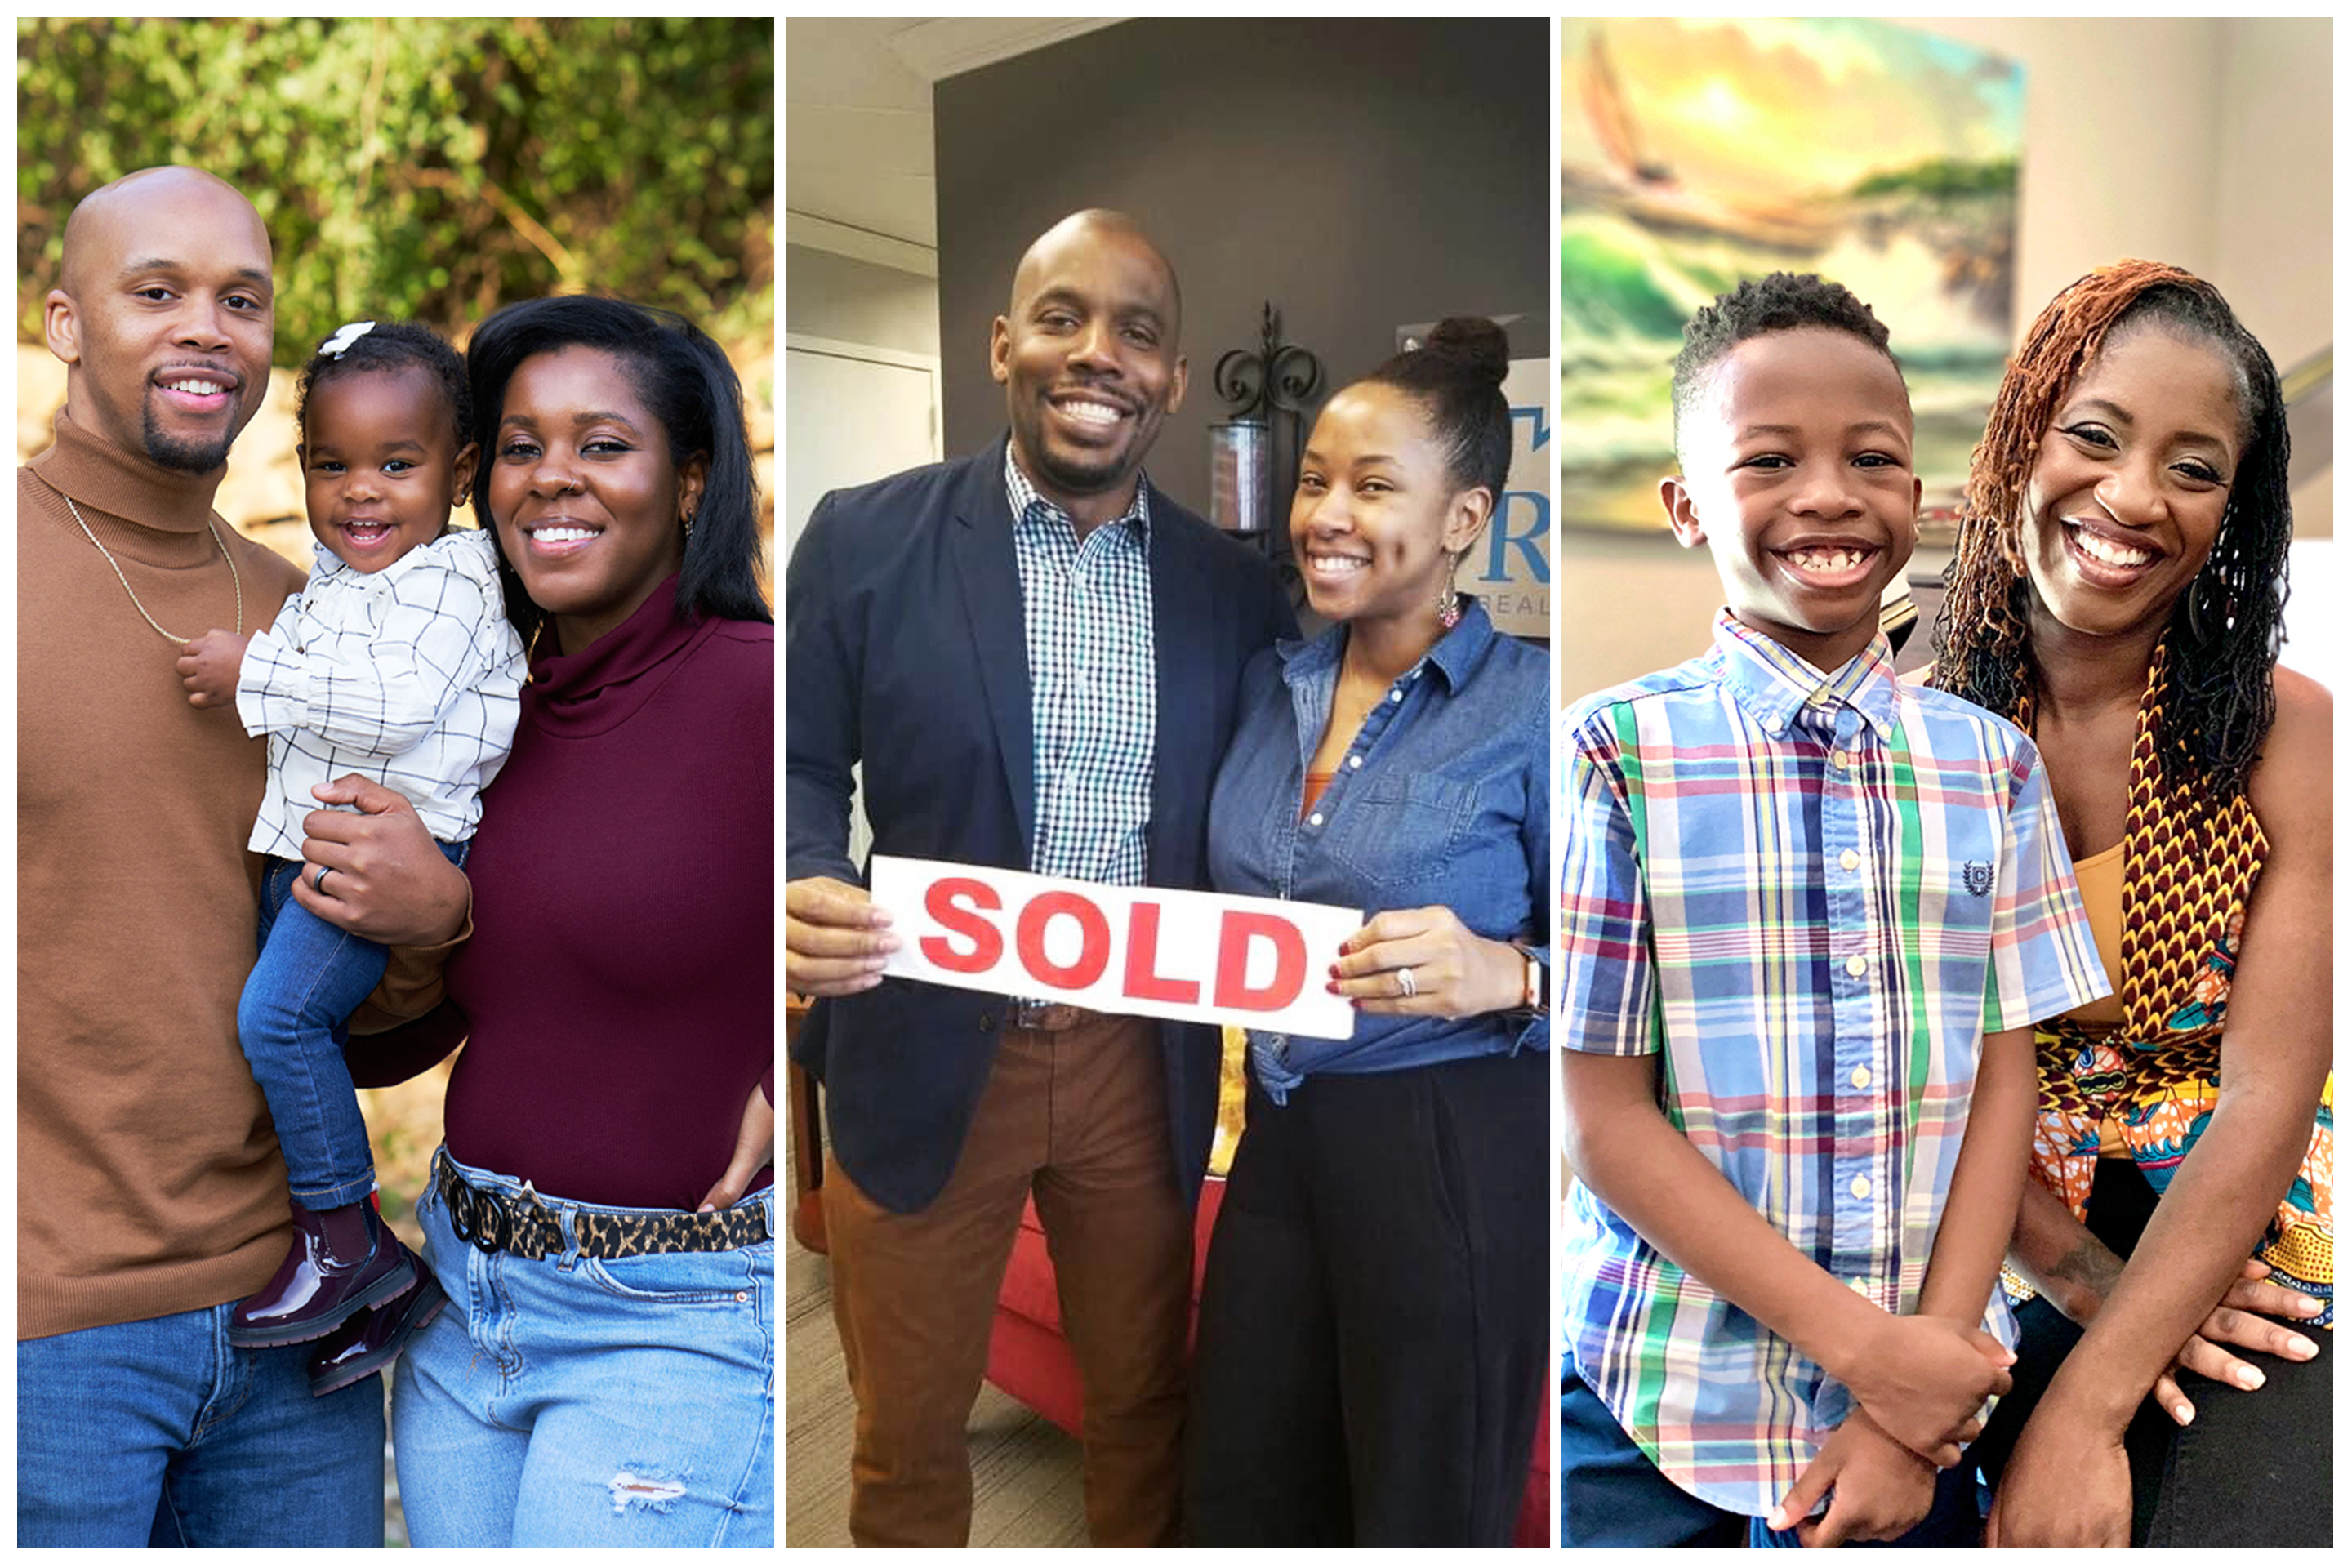 From left: Cameron and Kescheler Powell with their two-year-old daughter; Jamar and Cherisse Hudson the day they bought their home; Such Charles with her nine-year-old son.